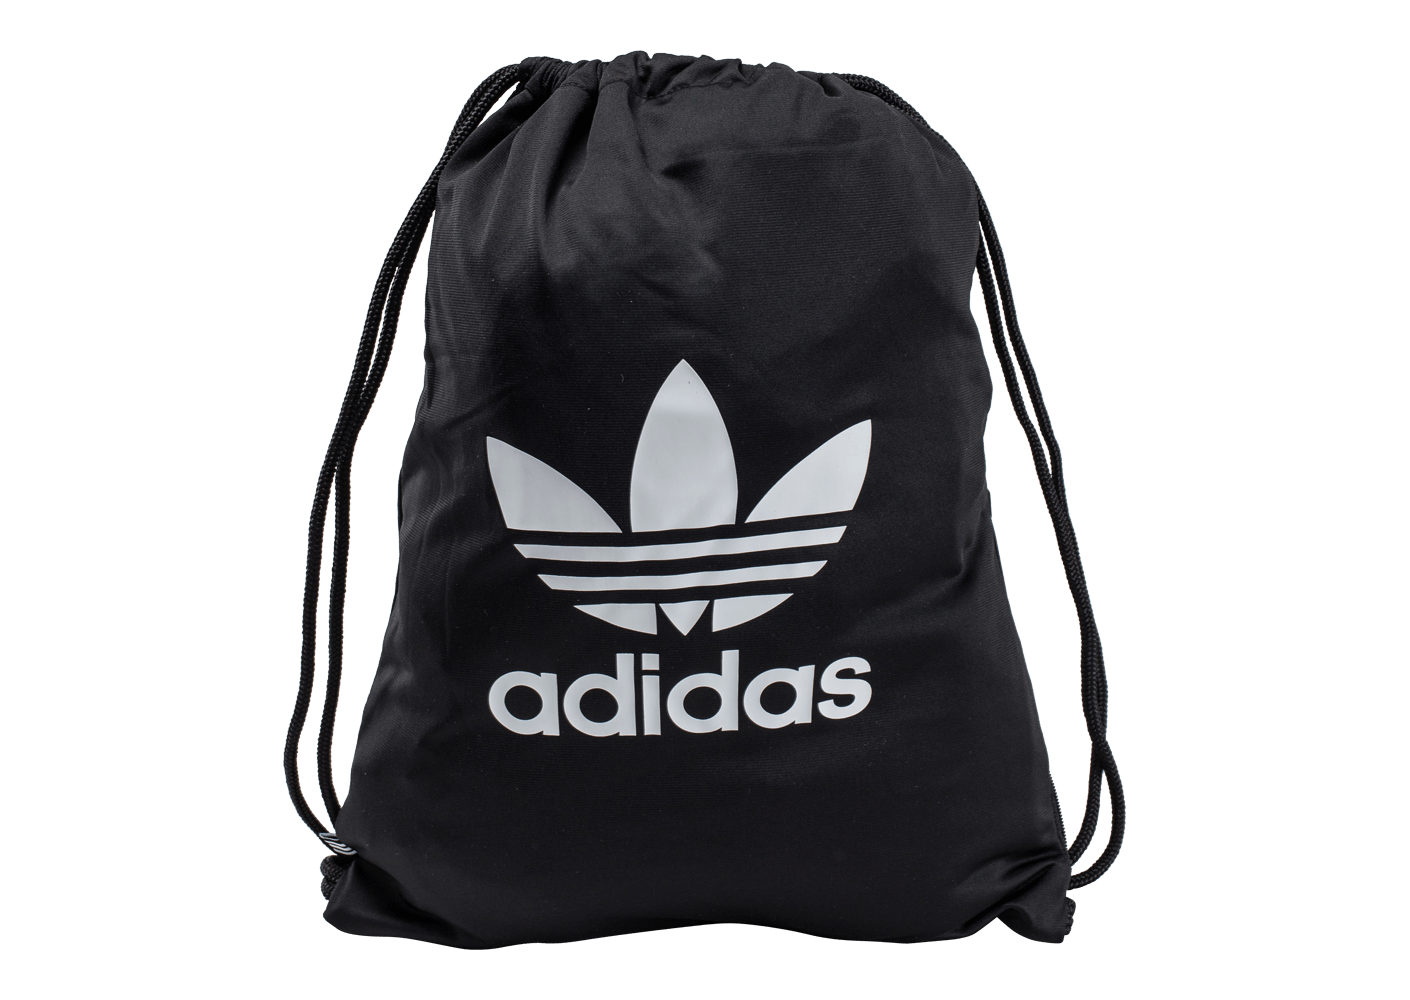 adidas sac de sport gymsack noir et blanc adidas chausport. Black Bedroom Furniture Sets. Home Design Ideas